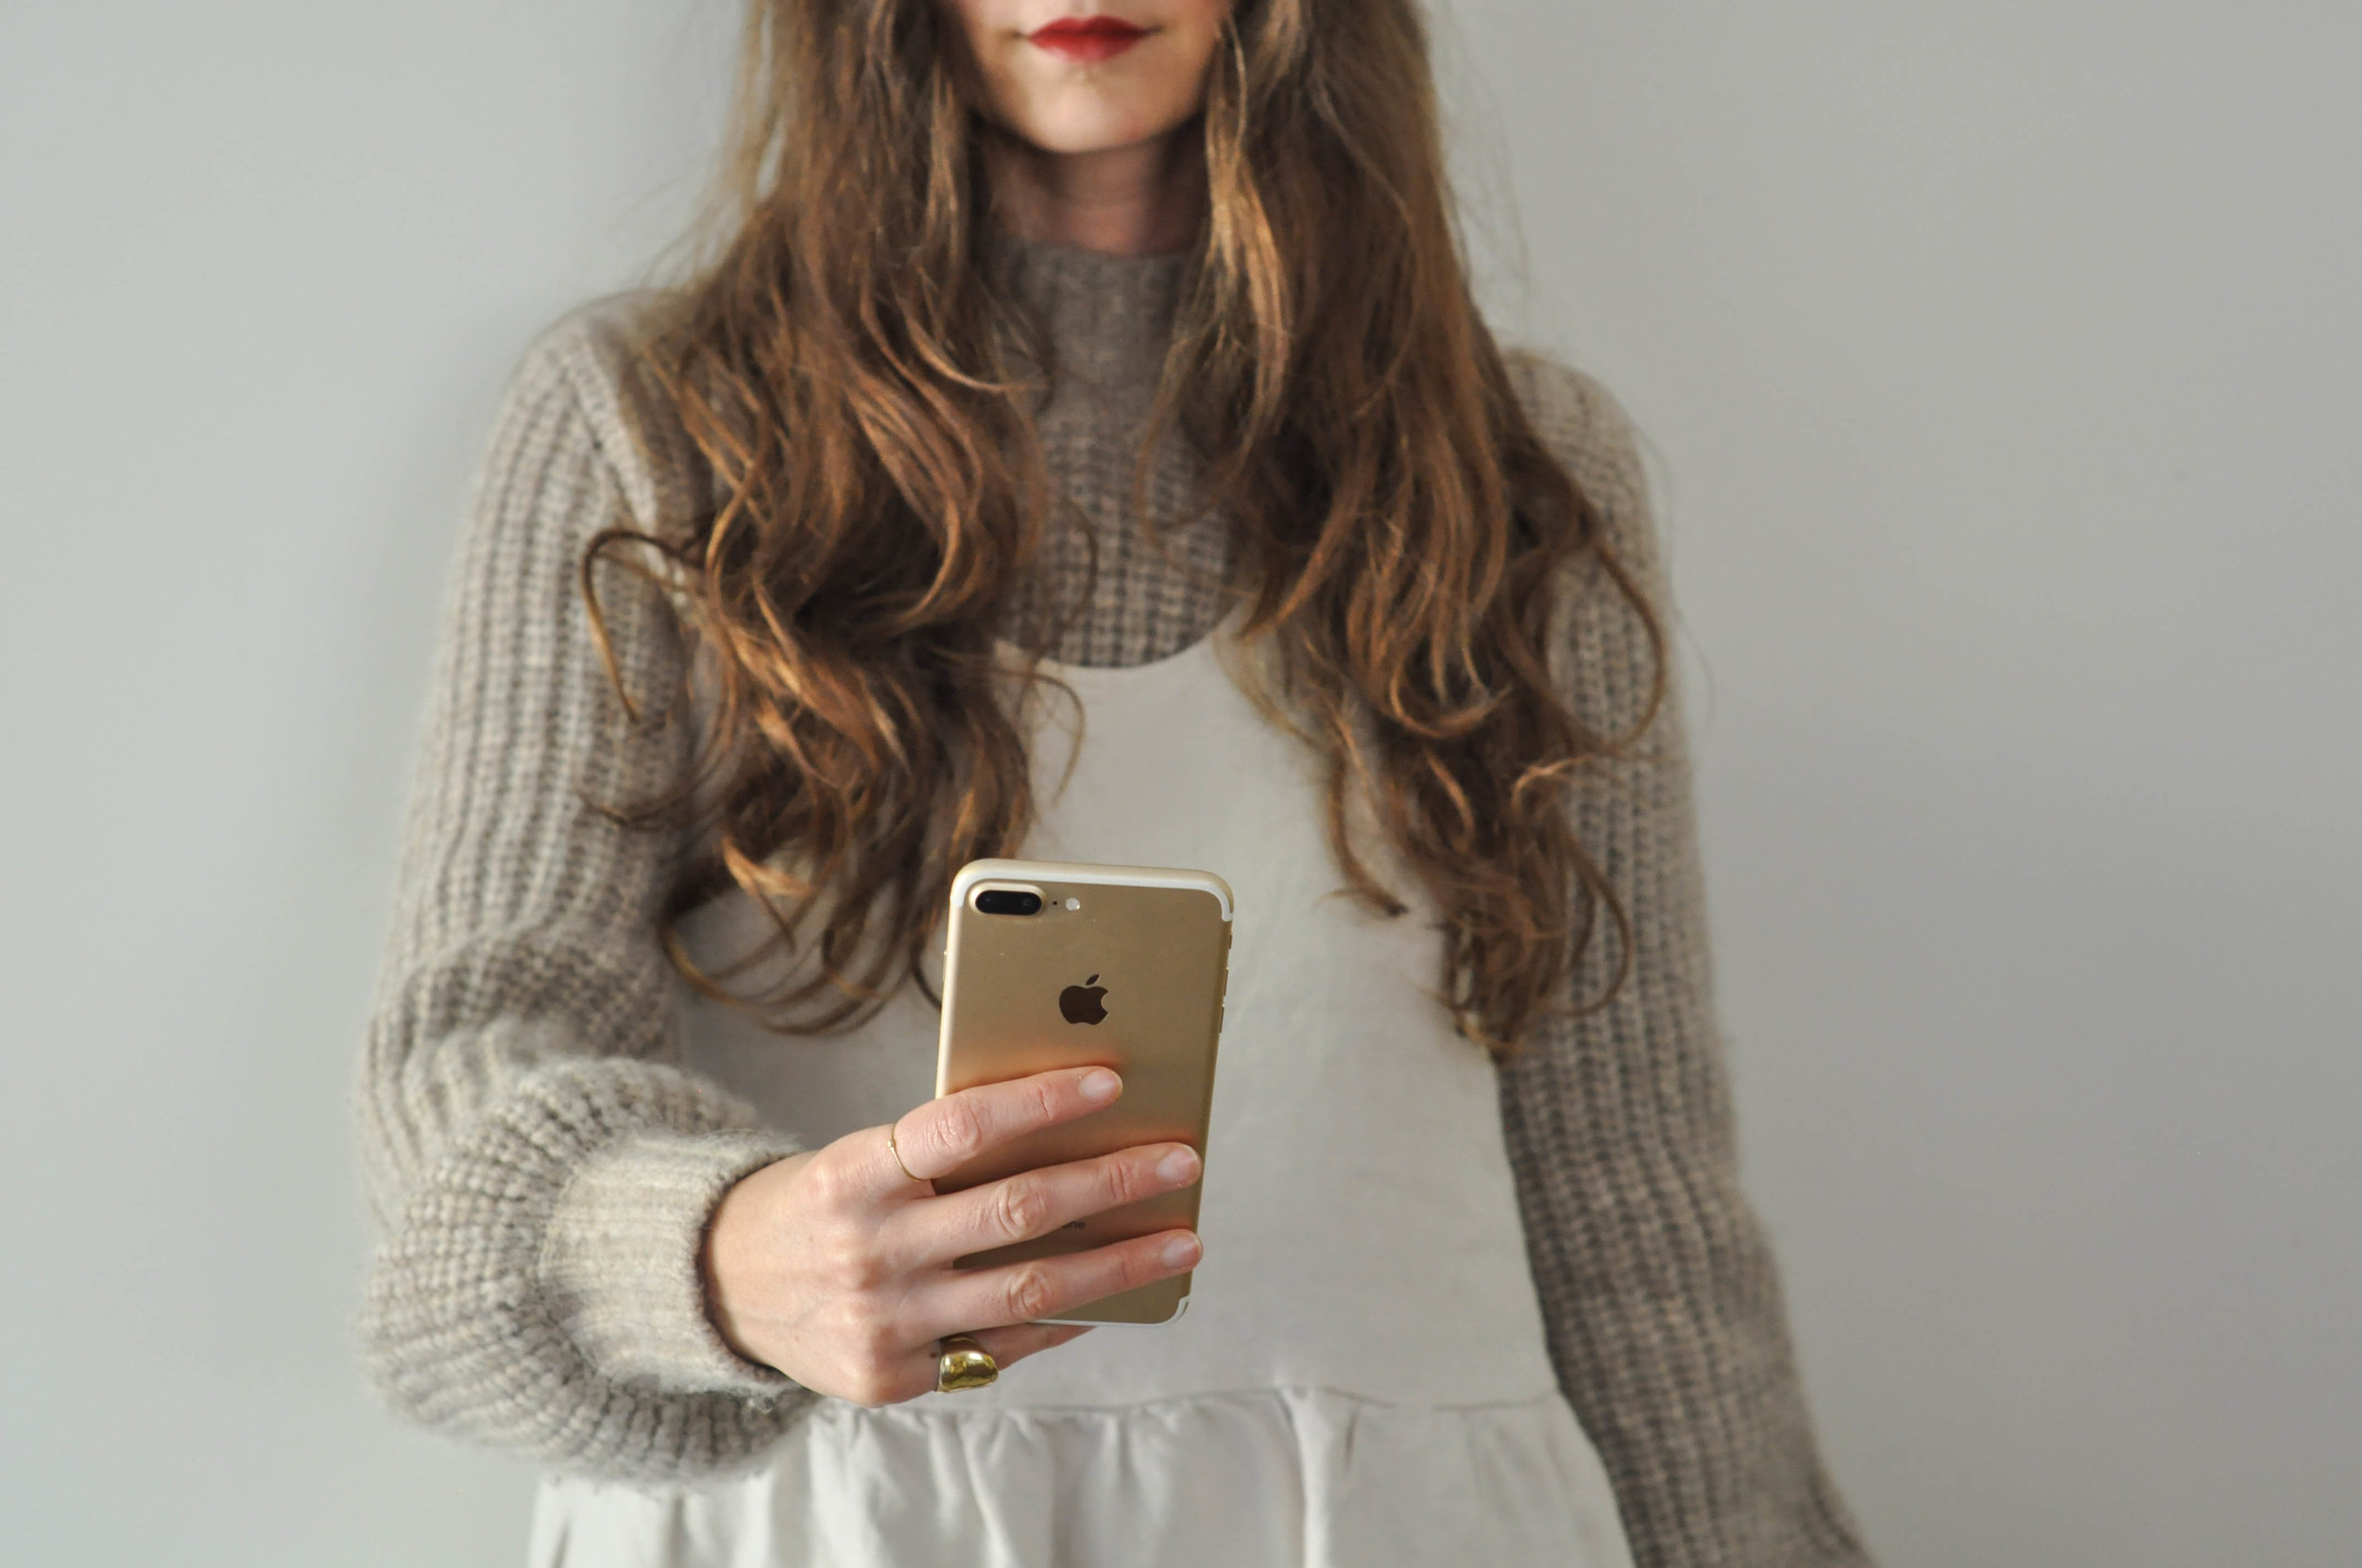 free-and-native-dress_iphone_red_lips_sweater_long_hair_1 (1 of 1).jpg